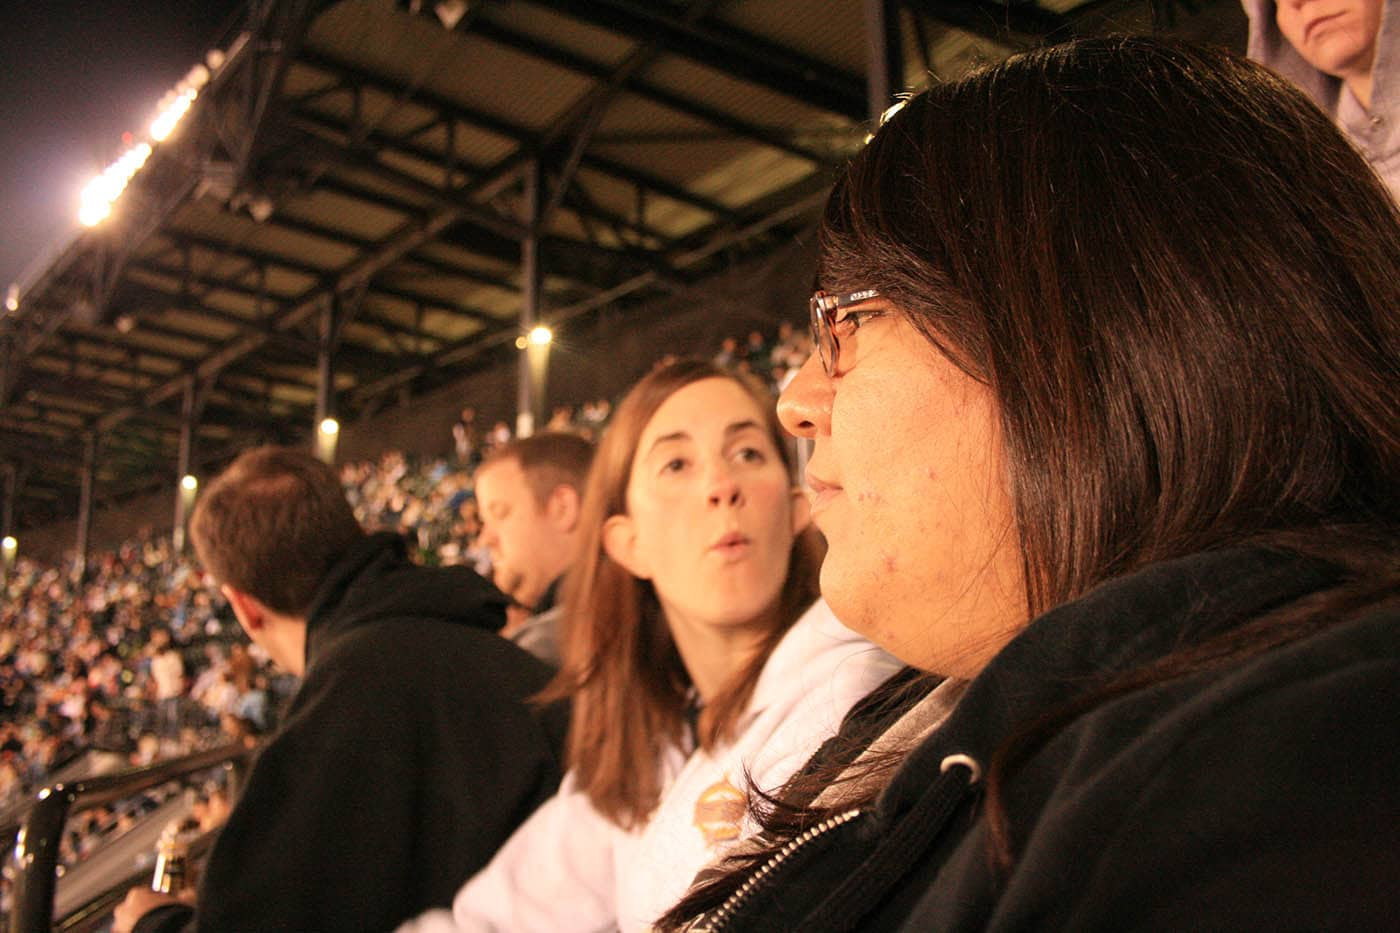 With friends at a White Sox game.